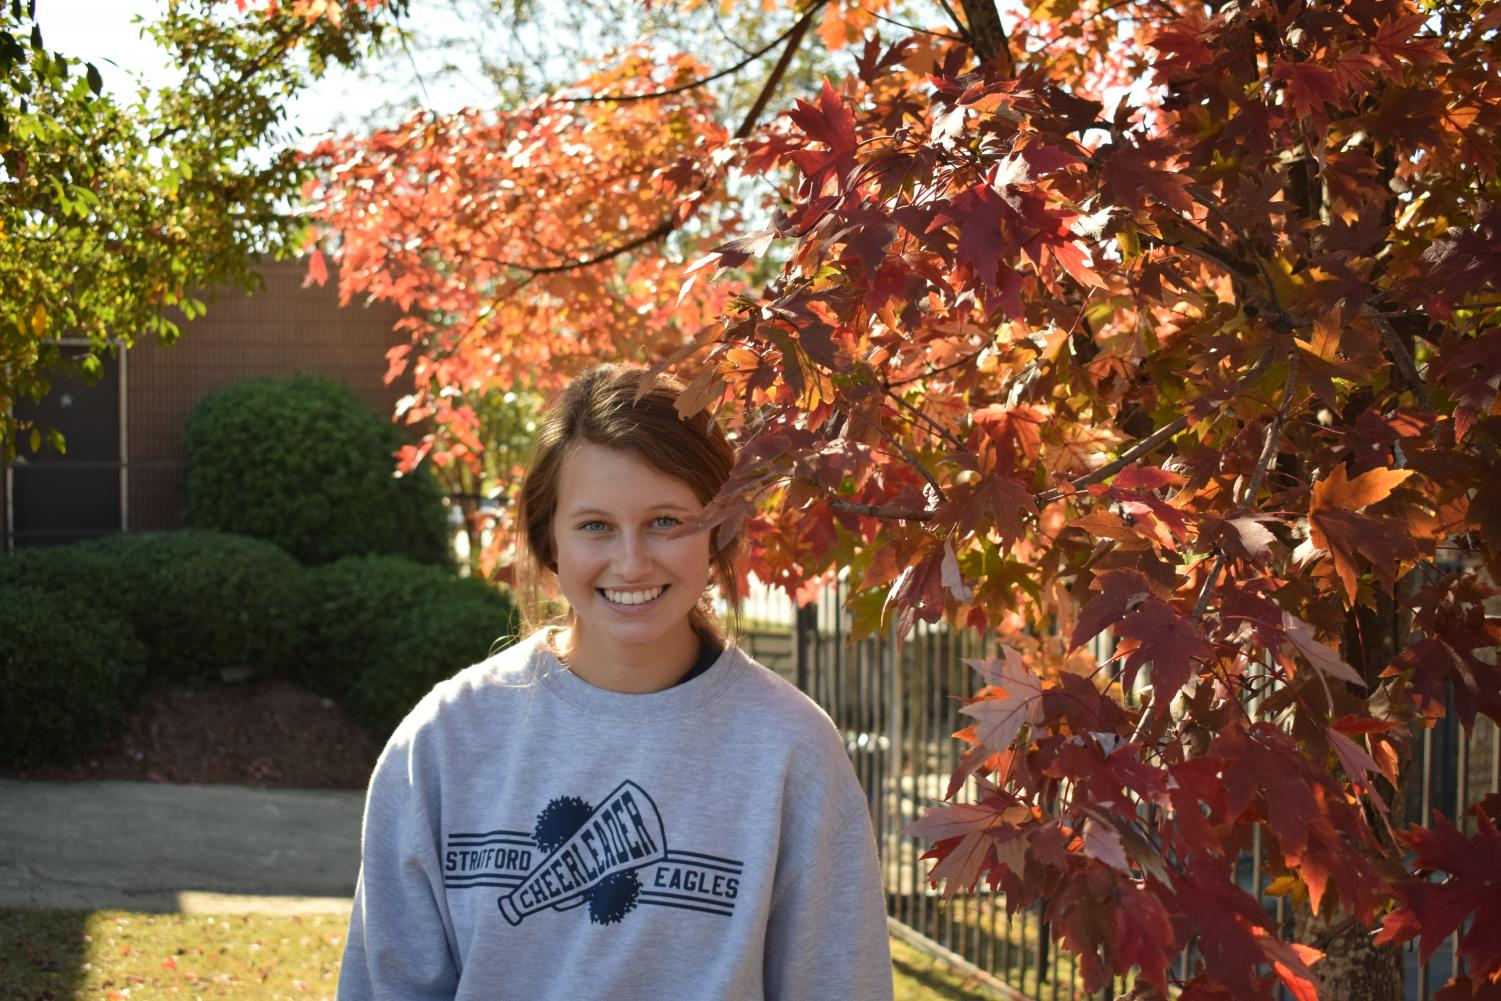 Autumn is sophomore Cate Eddlemon's favorite time of year